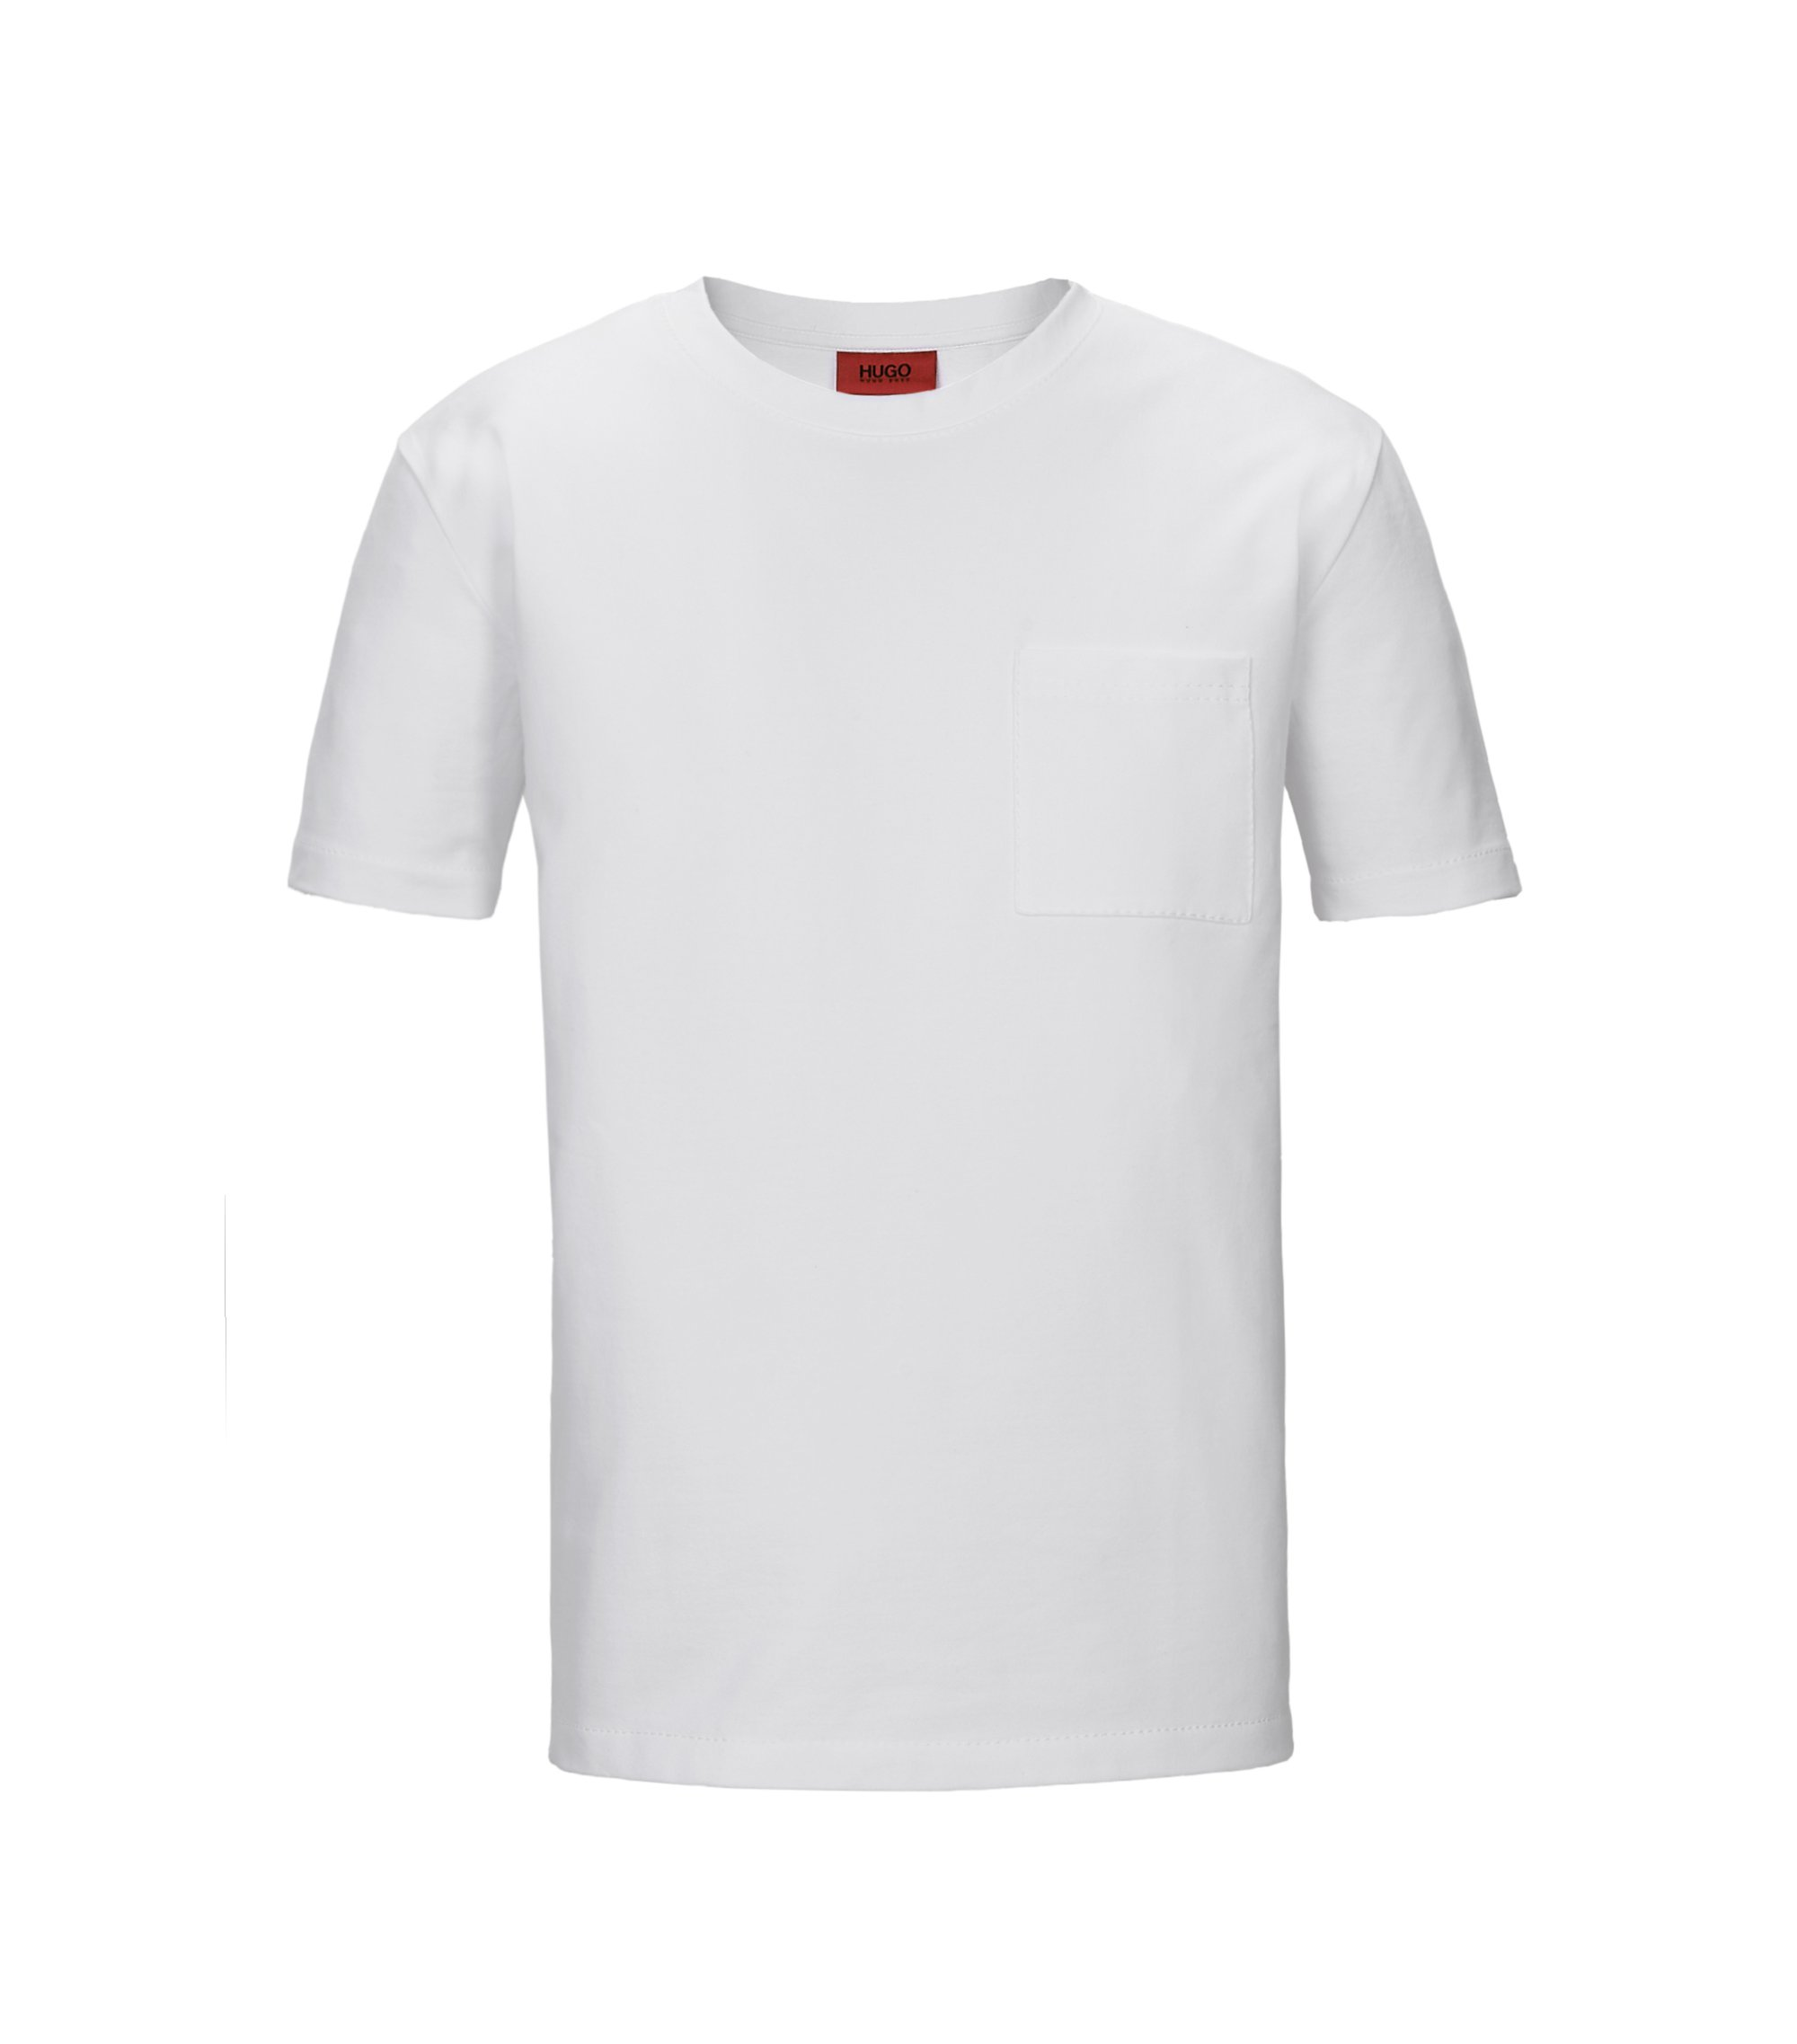 Stretch French Terry Pocket T-Shirt | Daccor, White